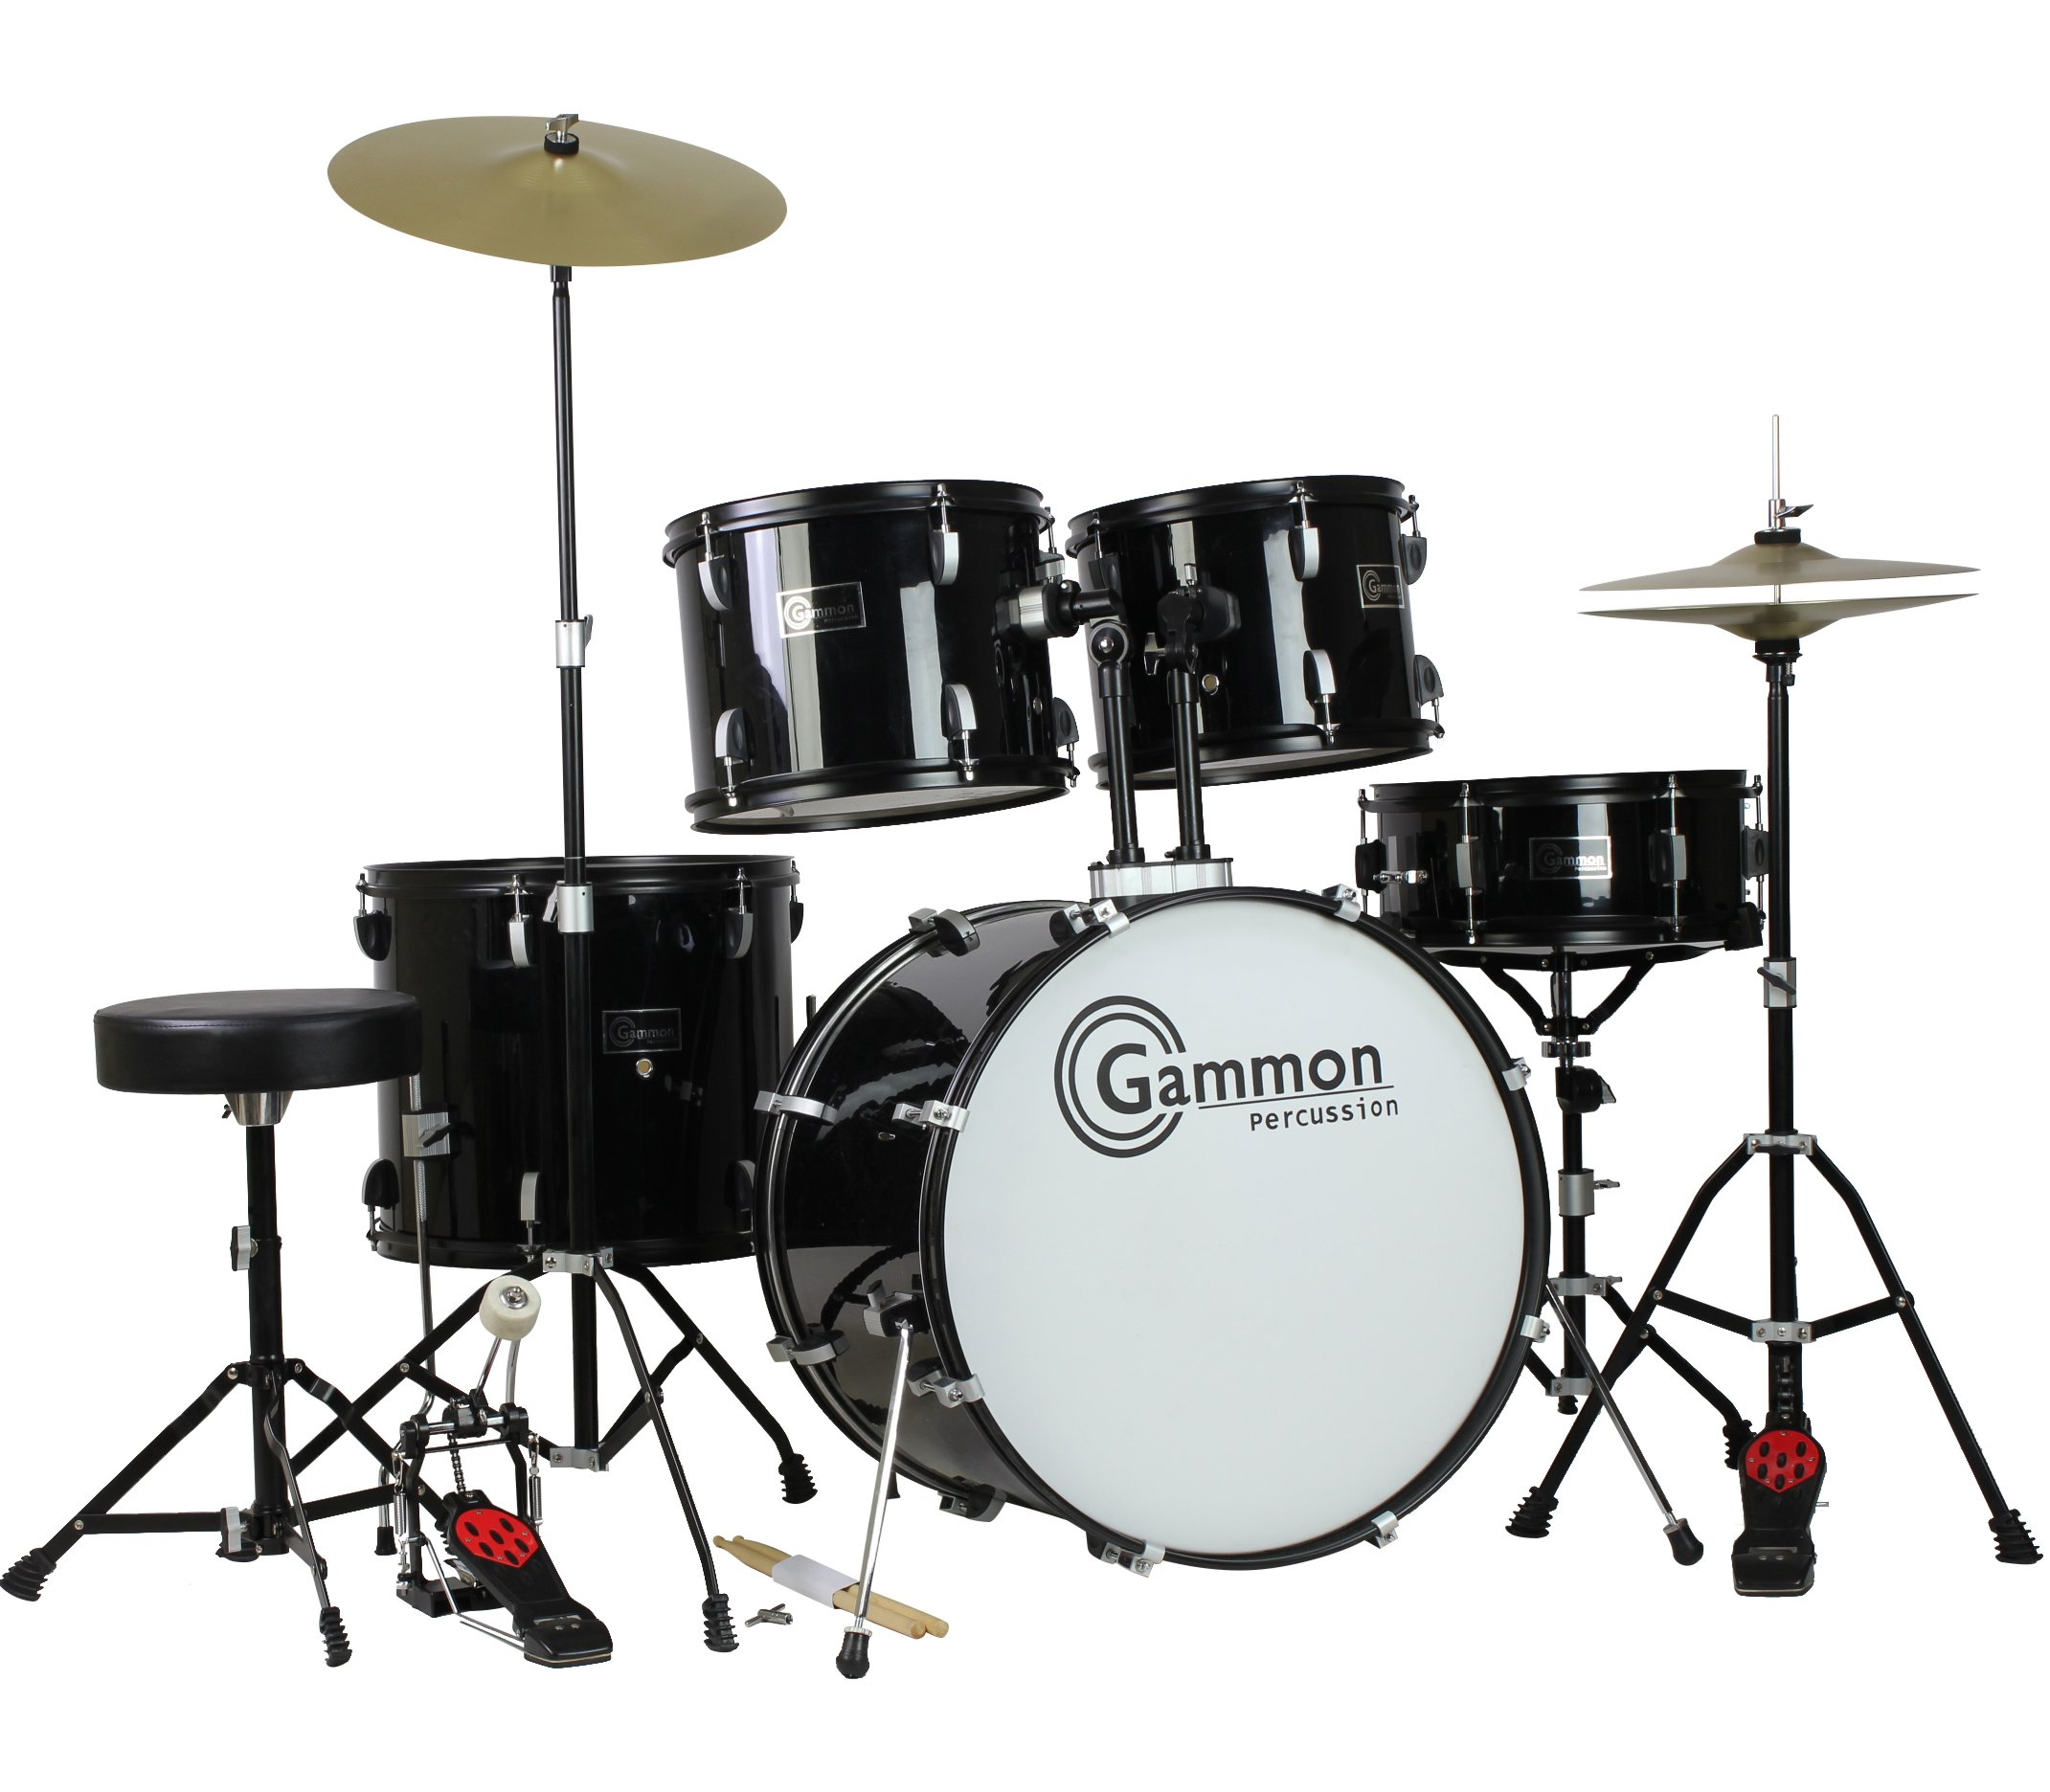 Gammon Percussion Full Size Complete Adult 5 Piece Drum Set with Cymbals Stands Stool and Sticks, Black by Gammon Percussion